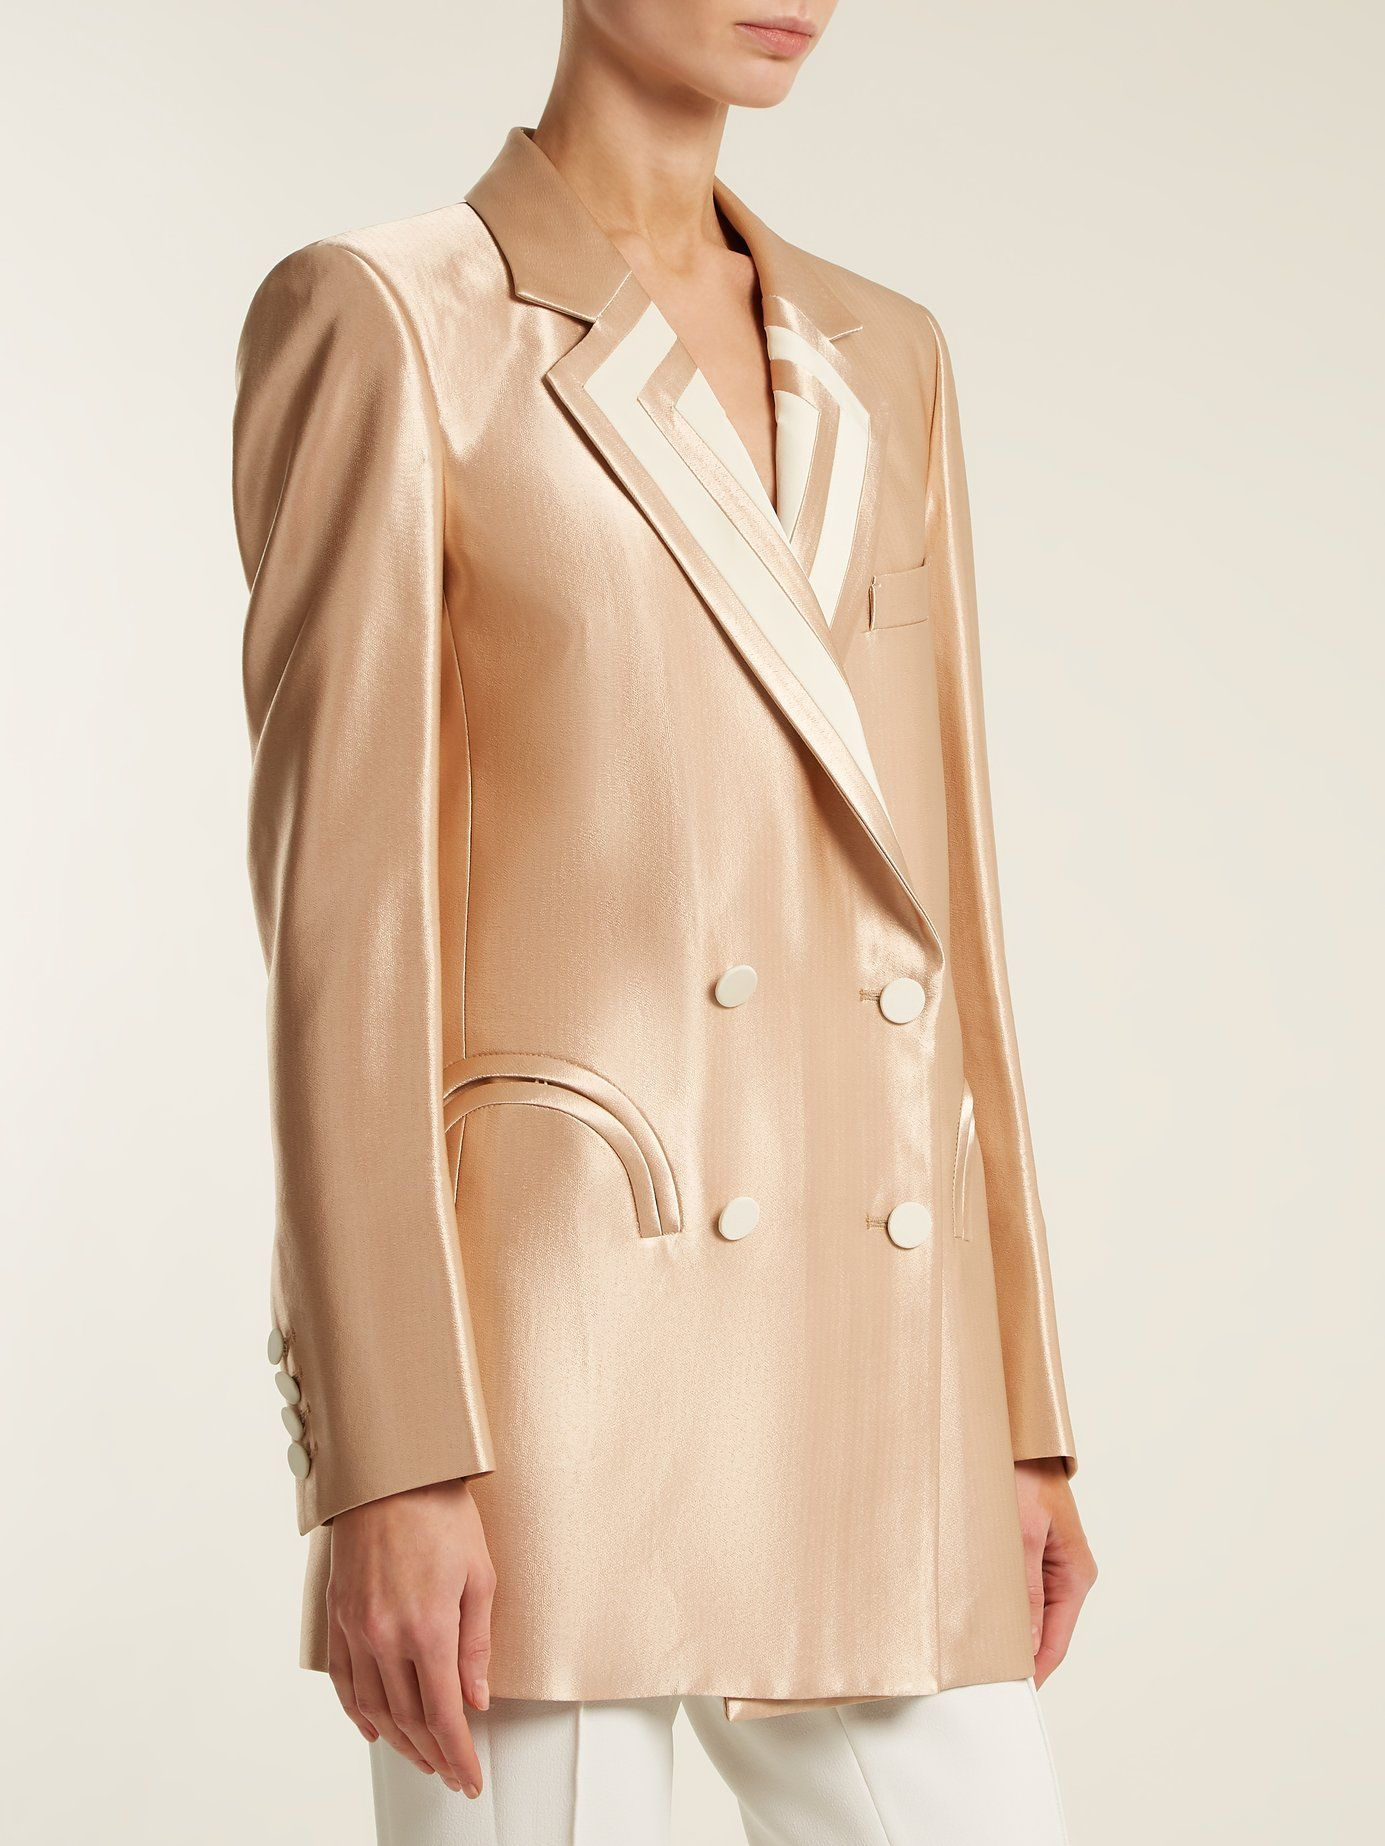 Founded by three former fashion editors, Blazé Milano has dignity and  elegance at the core of its aesthetic. This rose-gold Orianda blazer is  crafted in ...